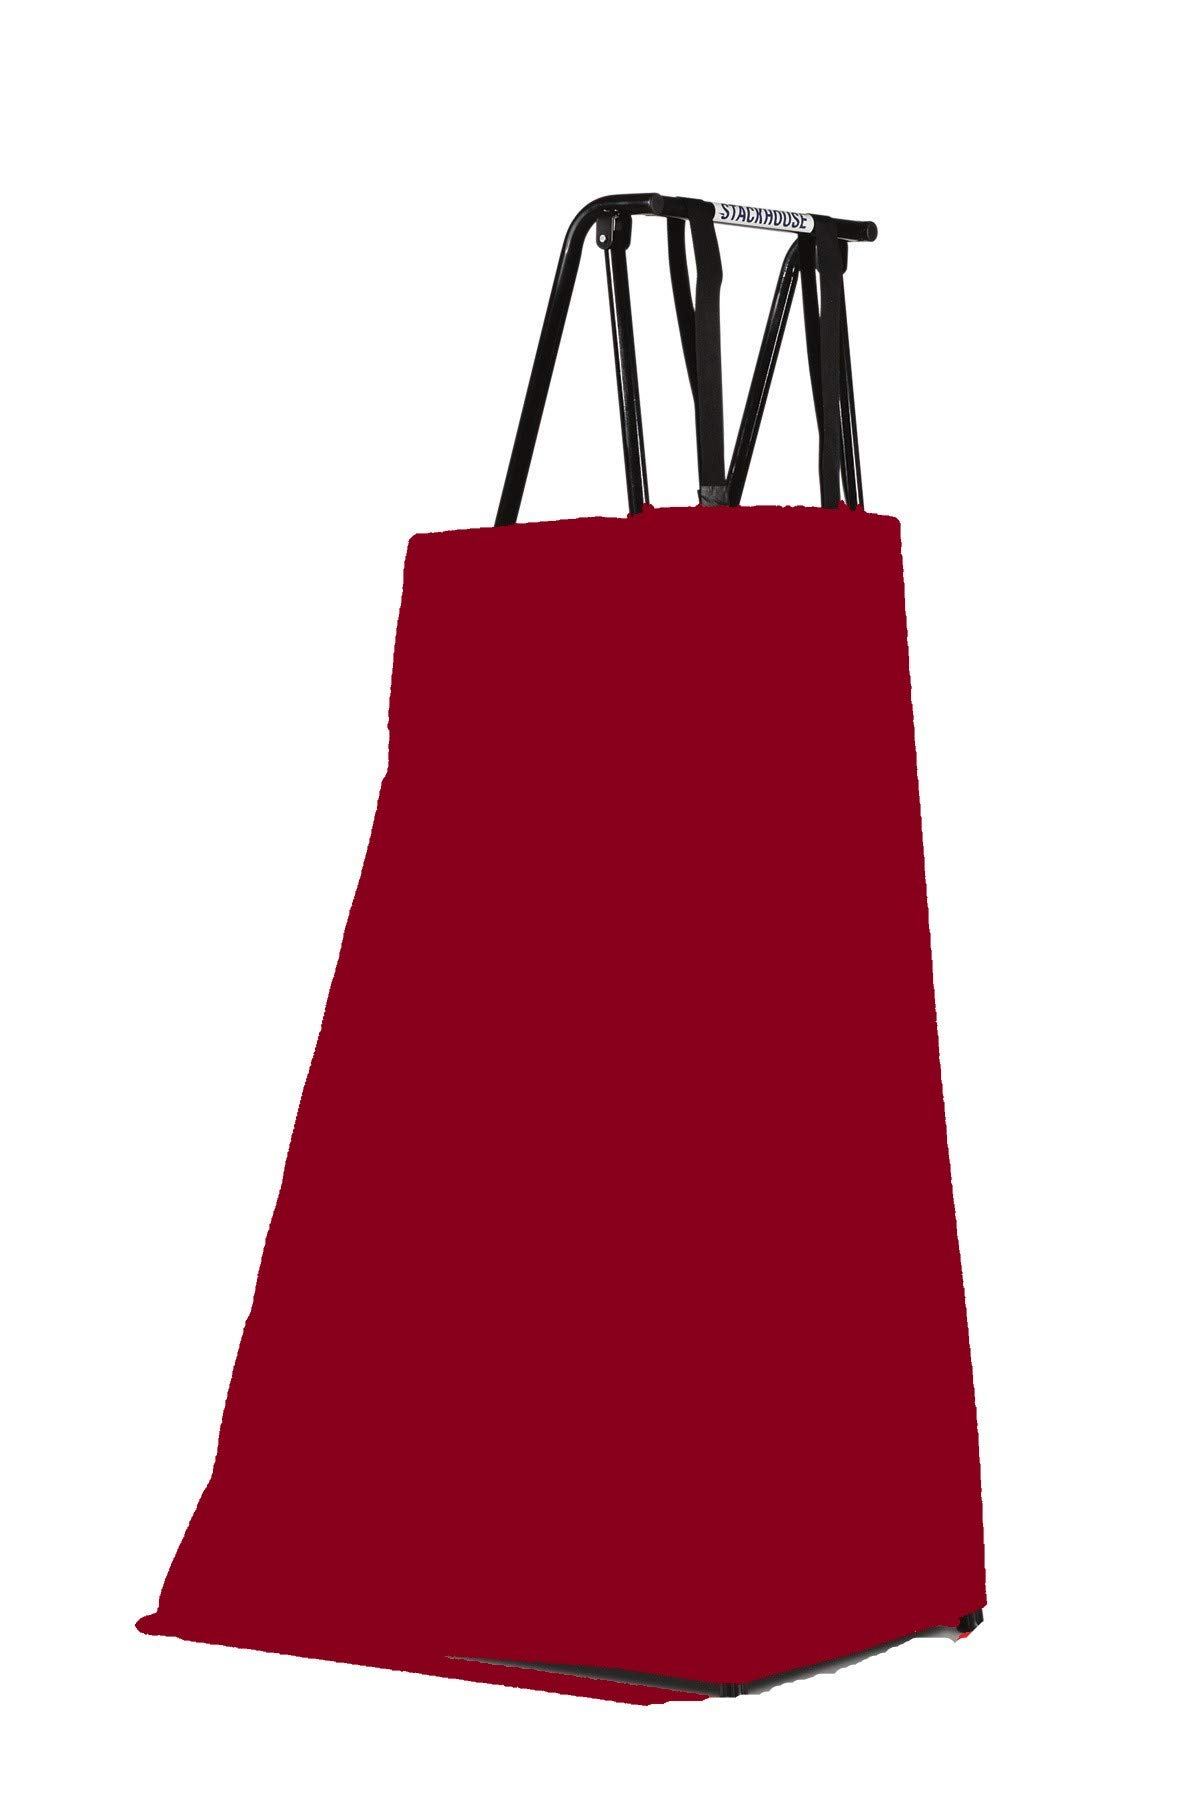 Eastern Atlantic New - Volleyball Referee Stand Protective Padding (Maroon)